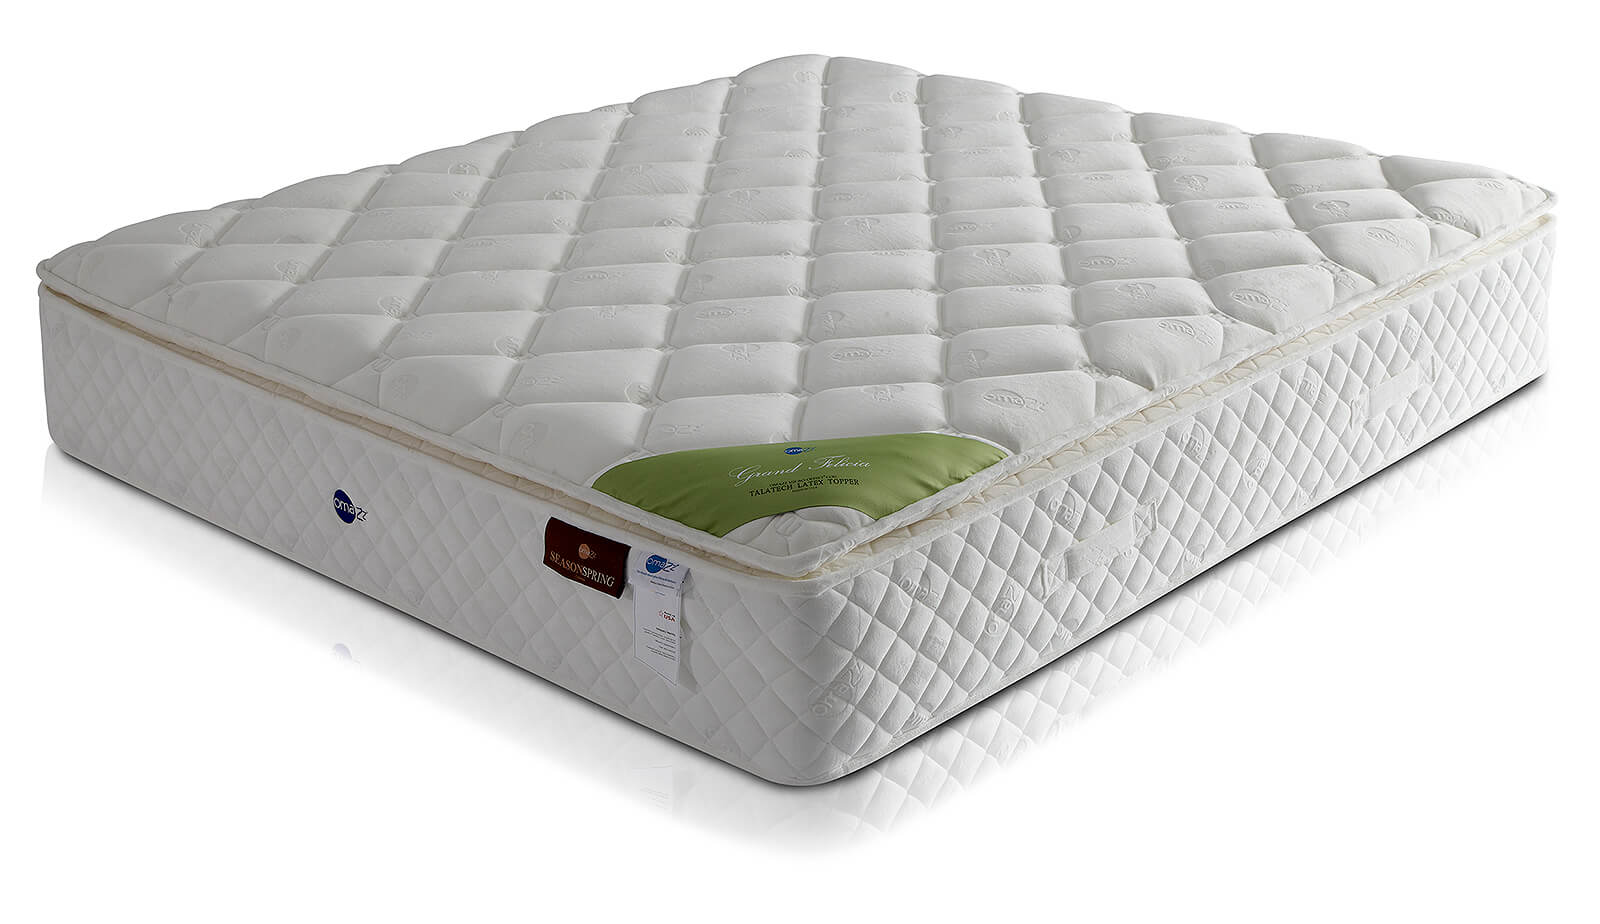 omazz-mattress-grand-felicia-o-8